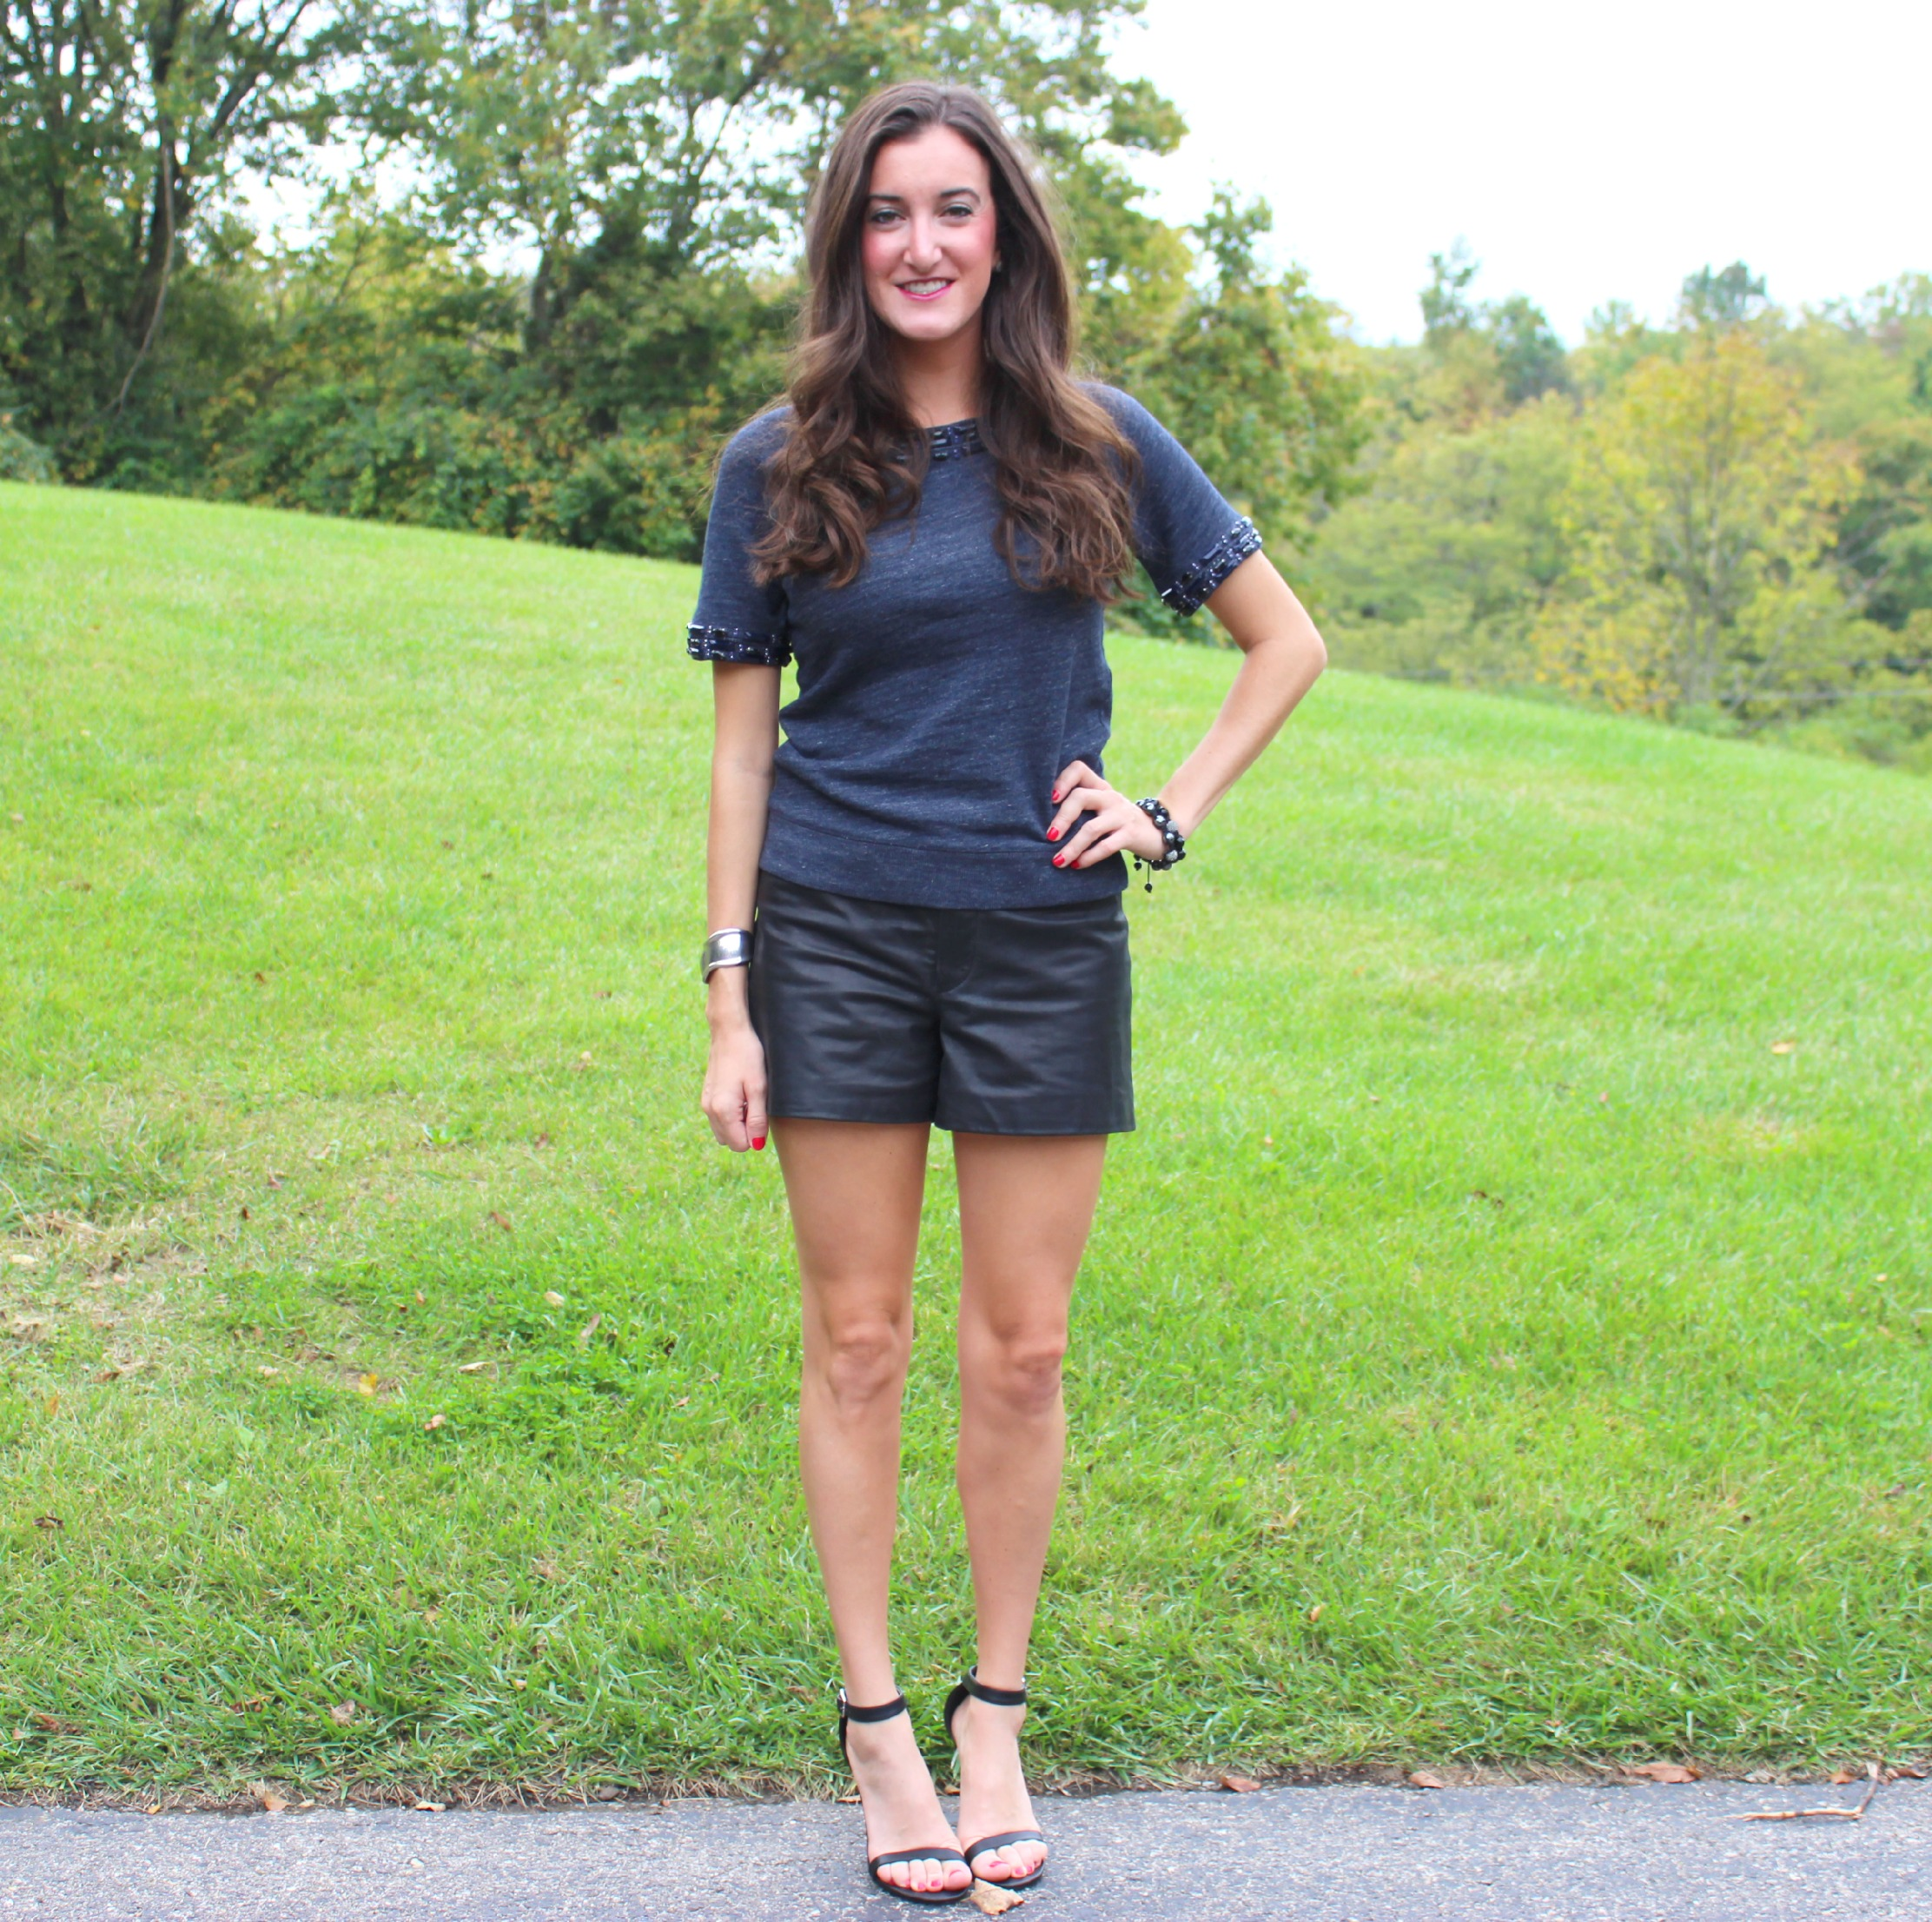 Black and Blue outfit